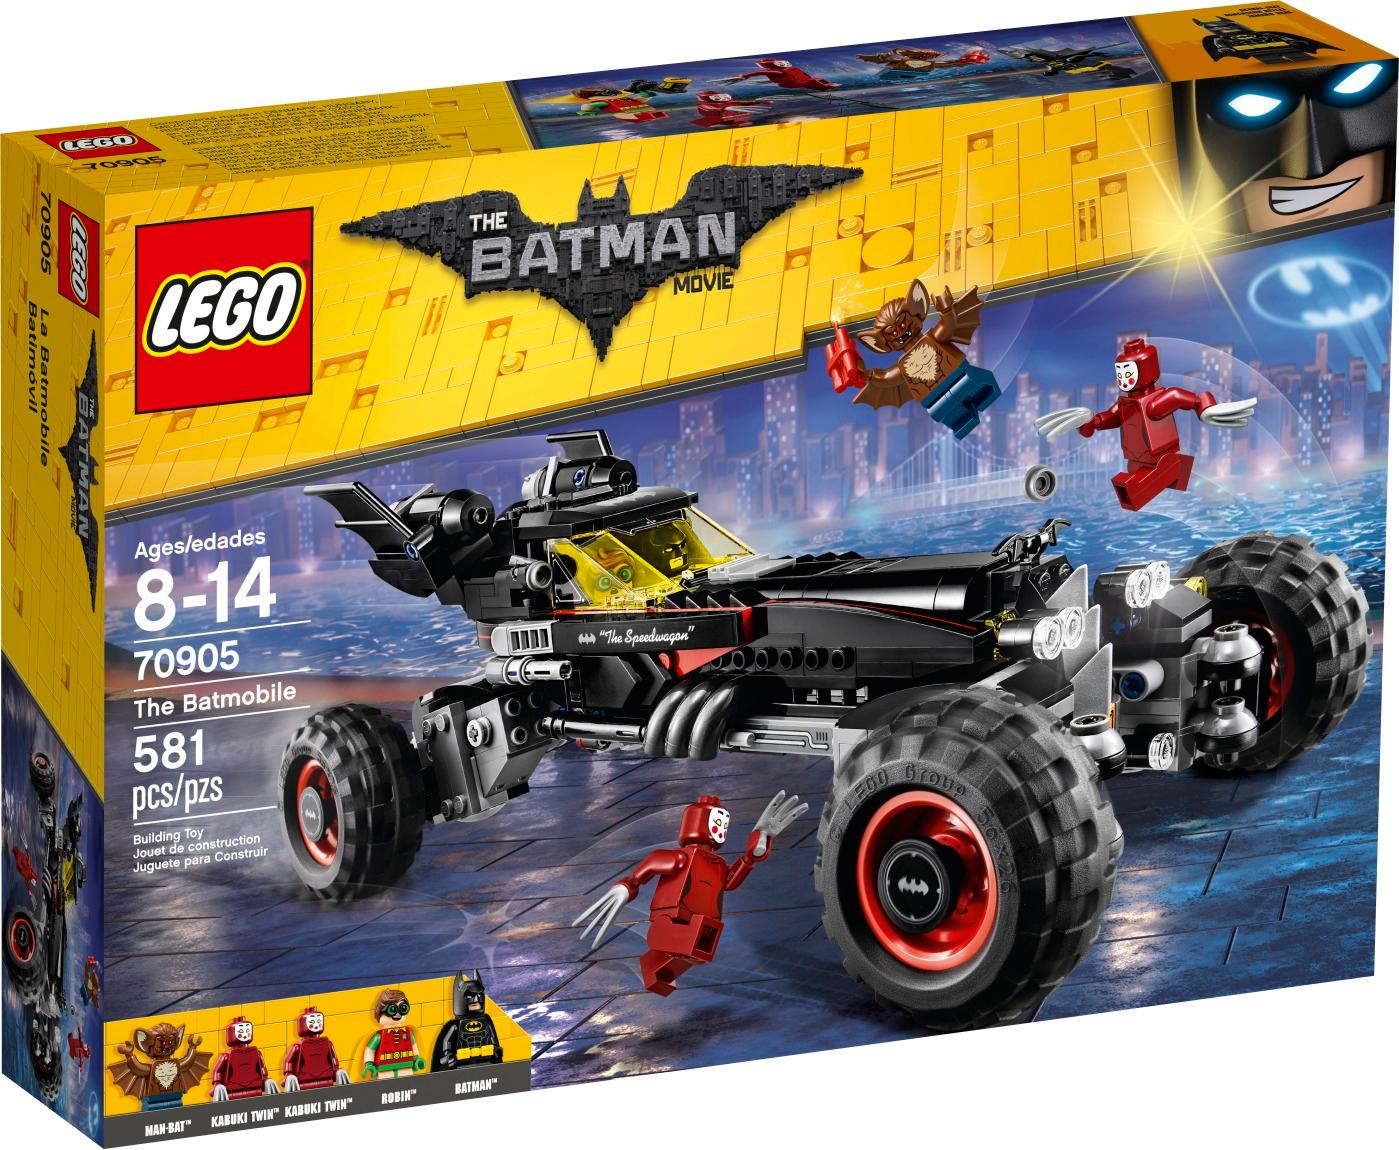 LEGO The Batman Movie Batmobile